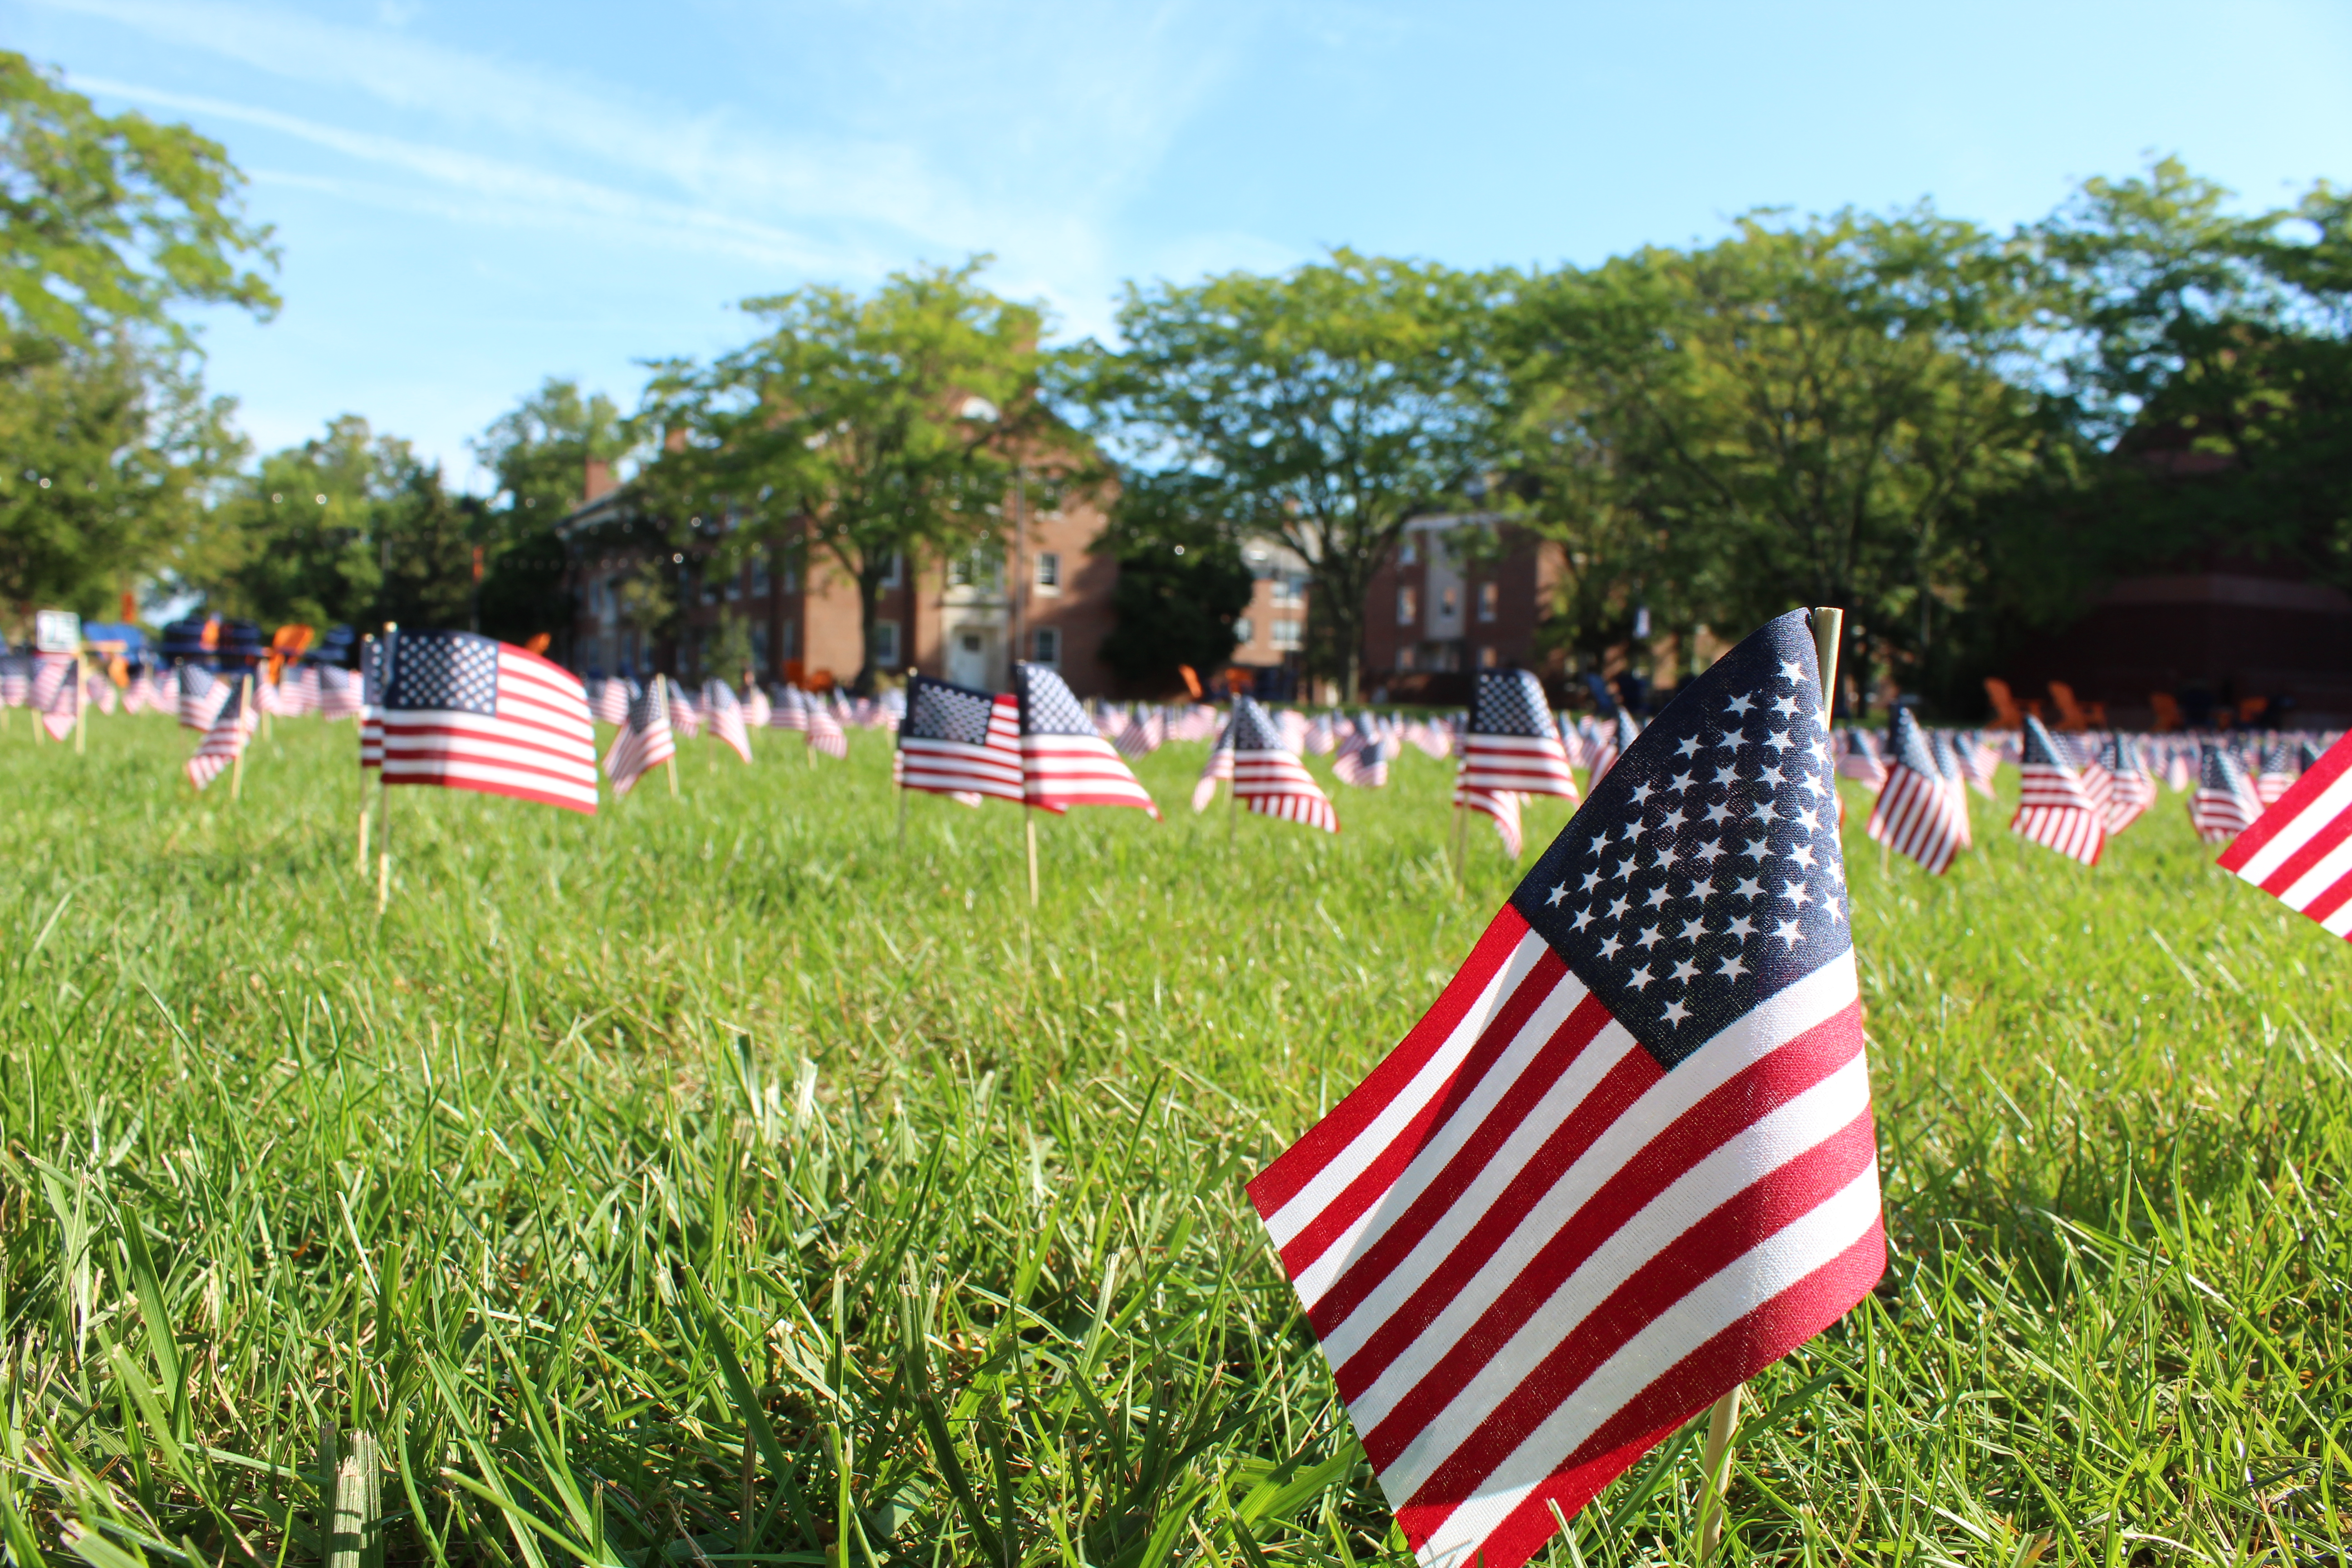 American flags on Stine Lake for 9/11 Memorial (Photo by Maggie Galloway)